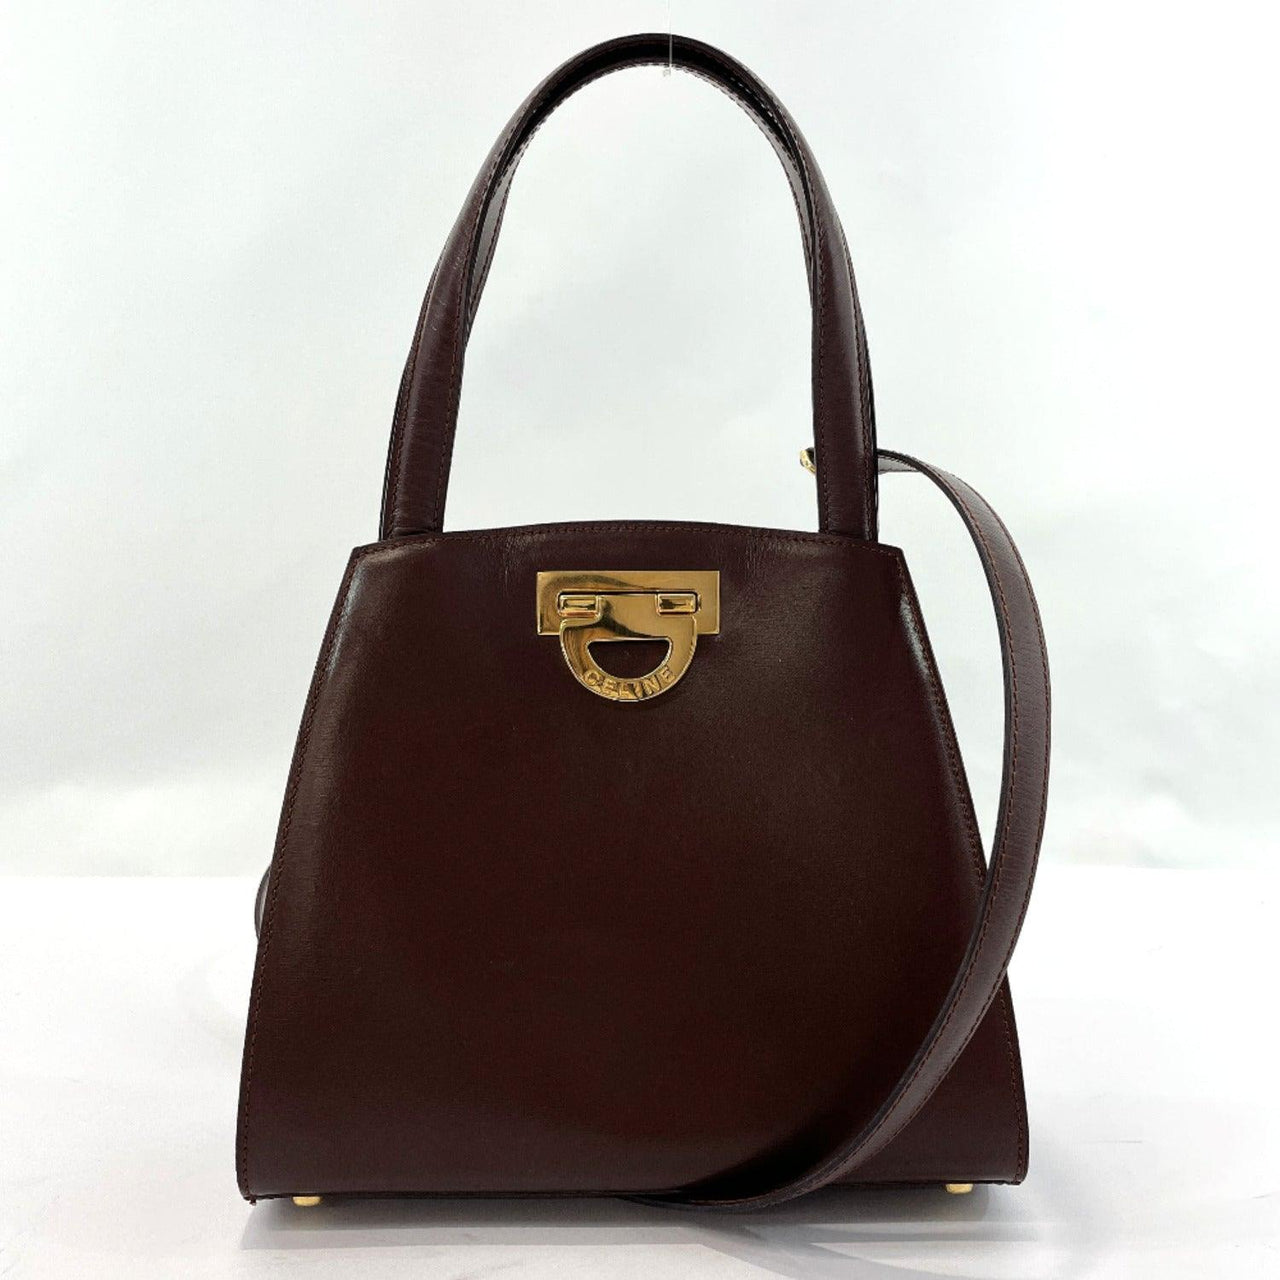 CELINE Handbag F/03 2WAY Vintage leather Brown Women Used